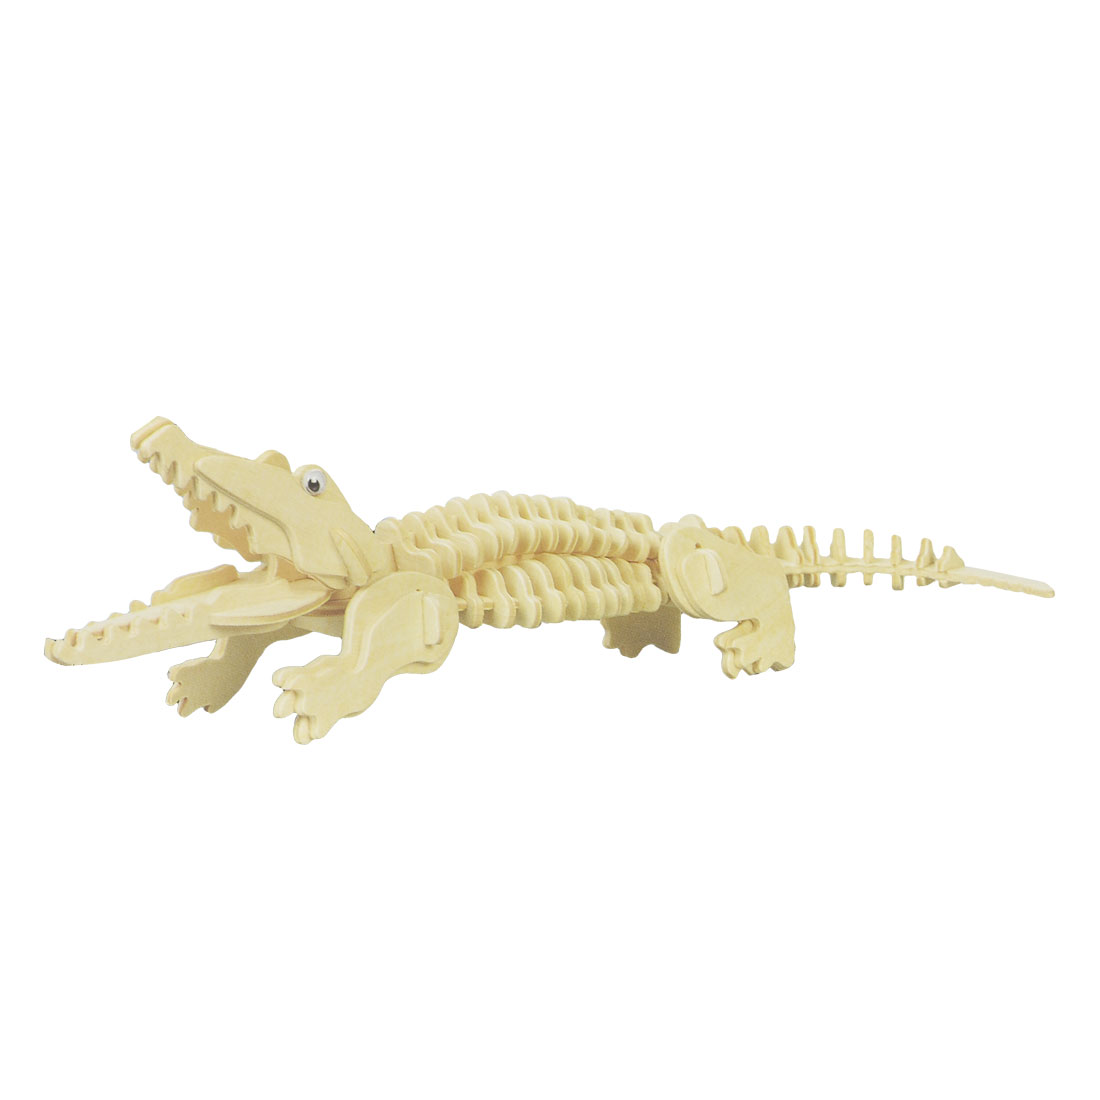 DIY Assembly Crocodile Wooden Educational Puzzled Toy Woodcraft Construction Kit